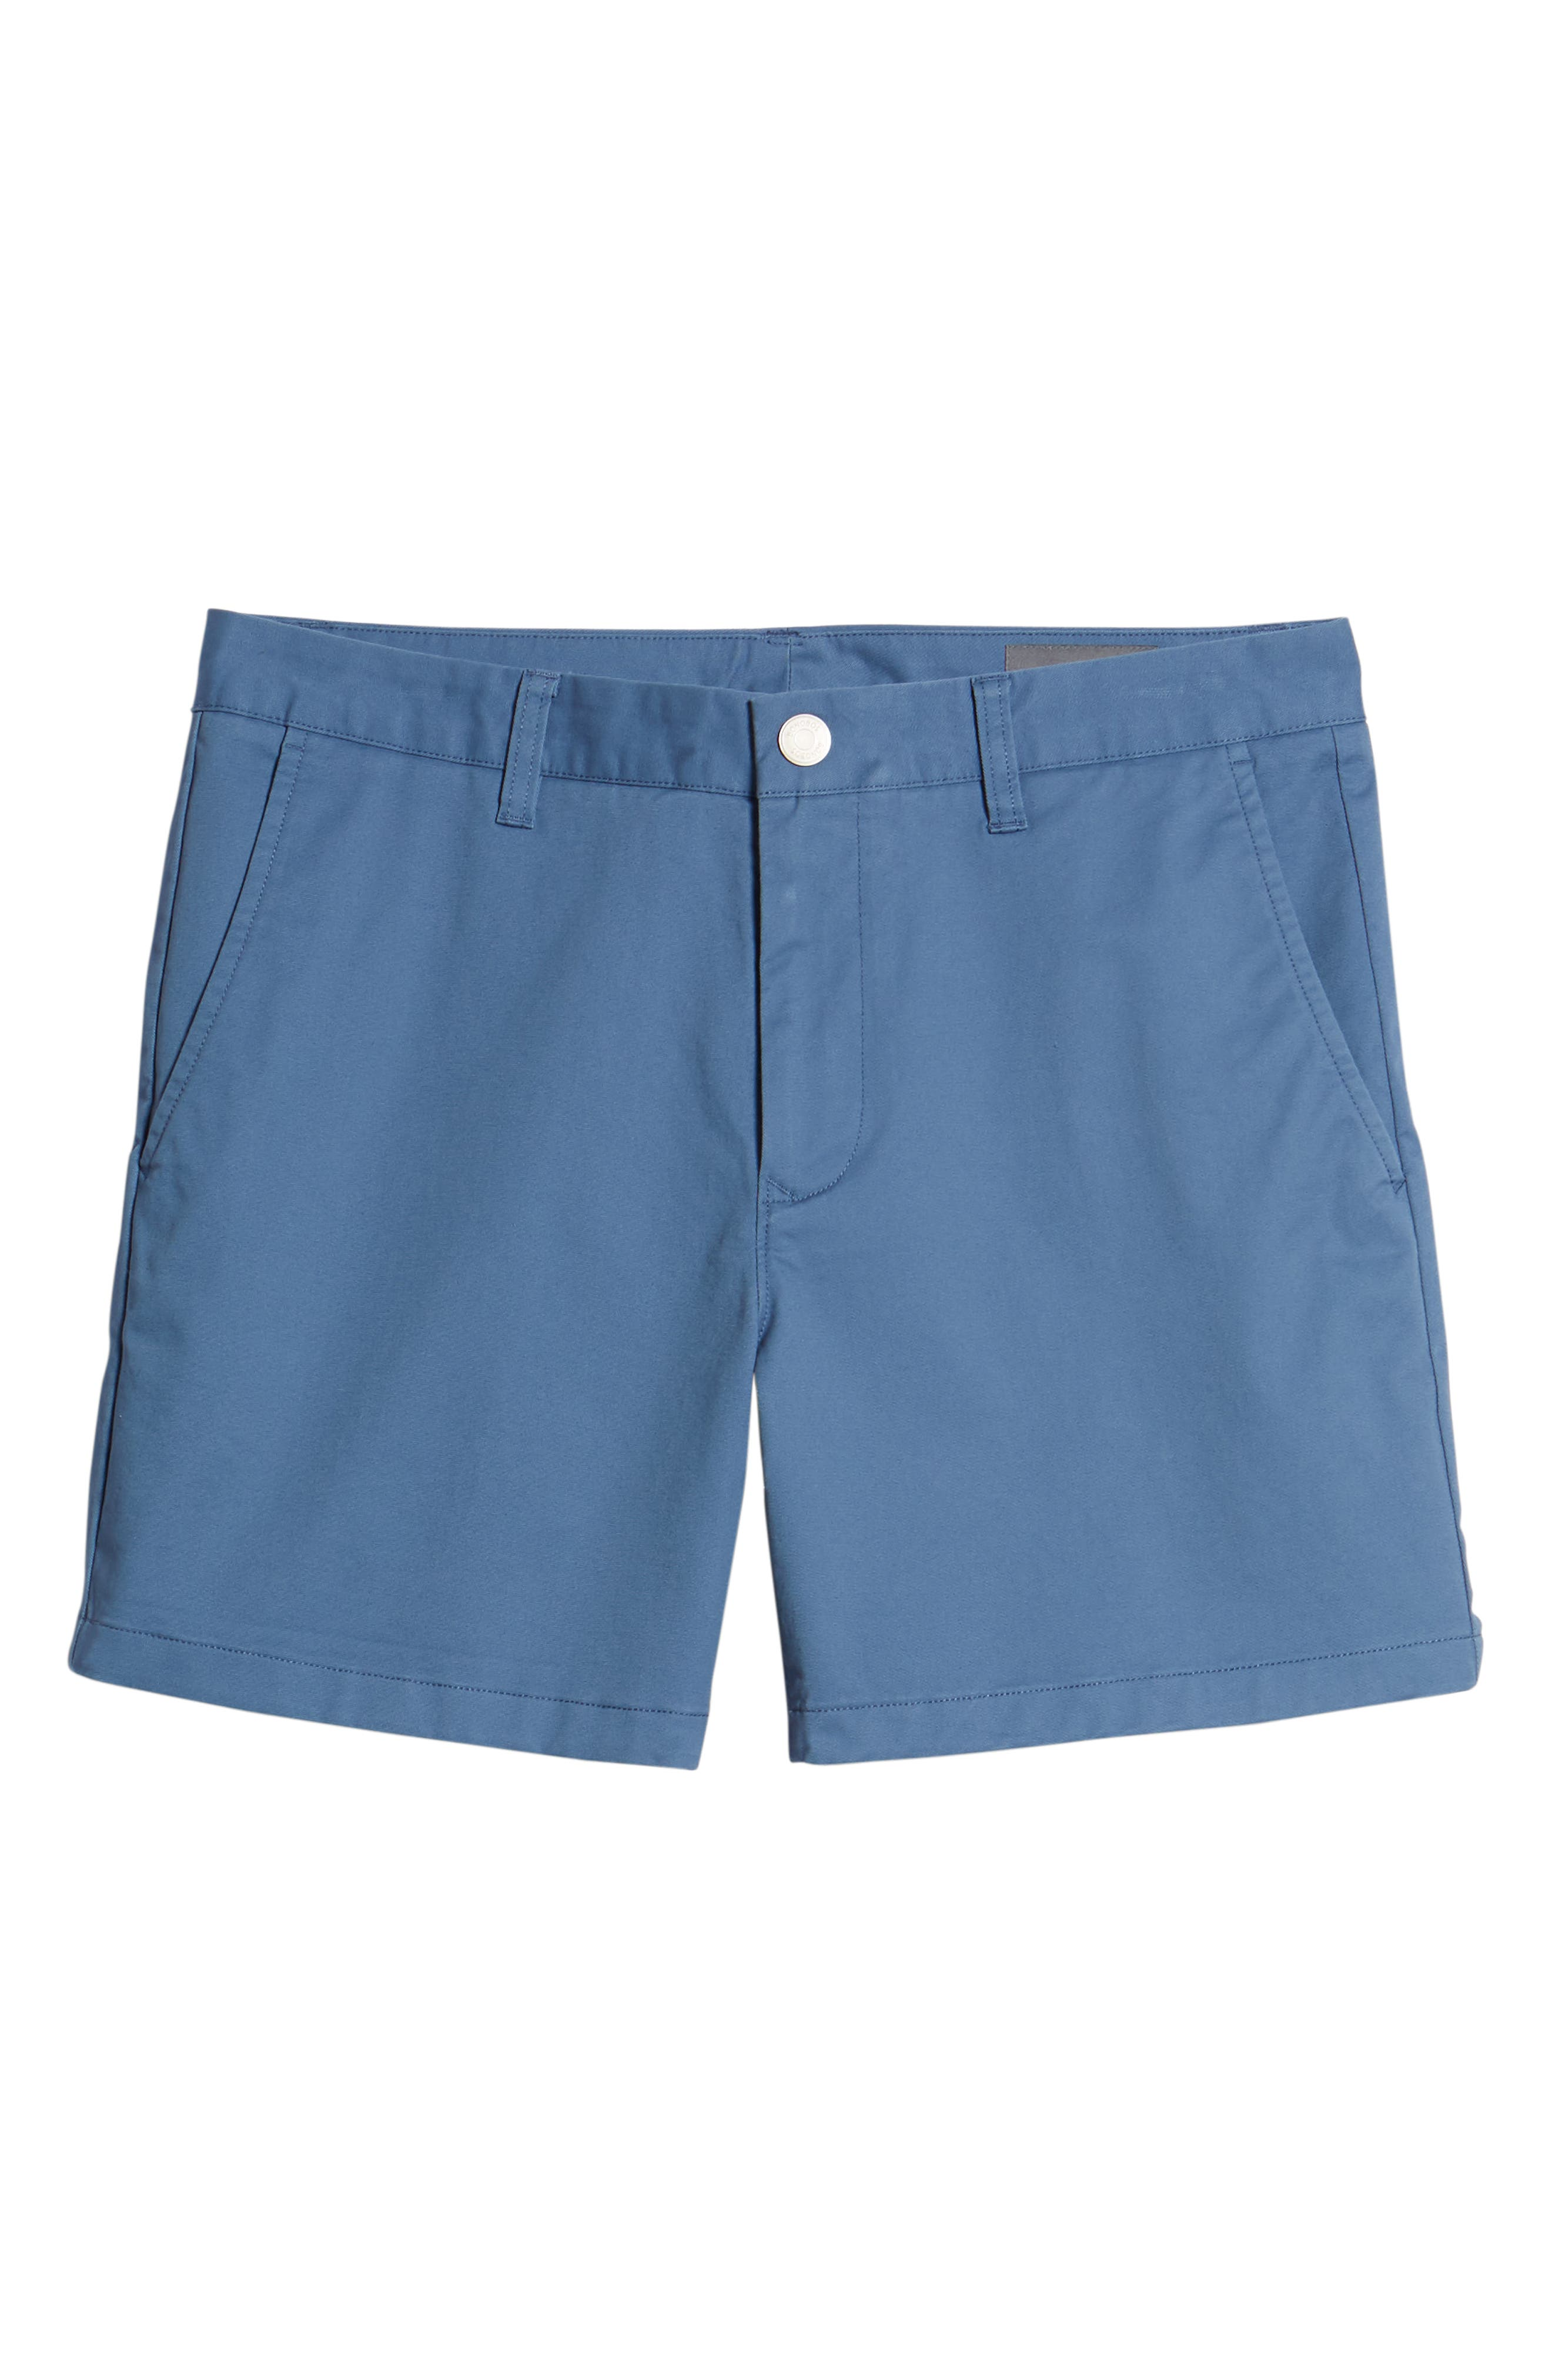 Stretch Washed Chino 5-Inch Shorts,                             Alternate thumbnail 154, color,